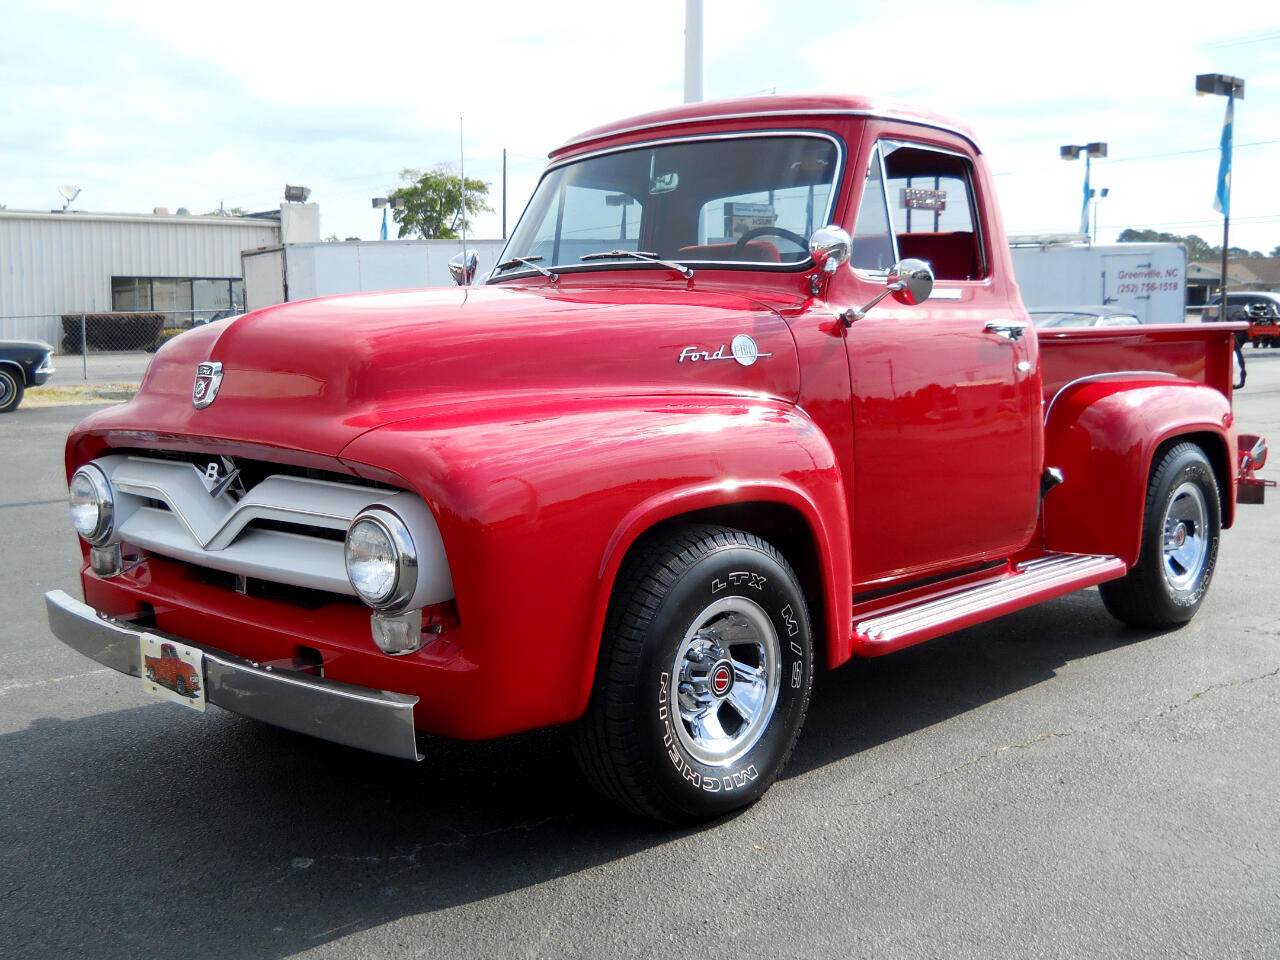 Ford 1/2 Ton Truck 1955